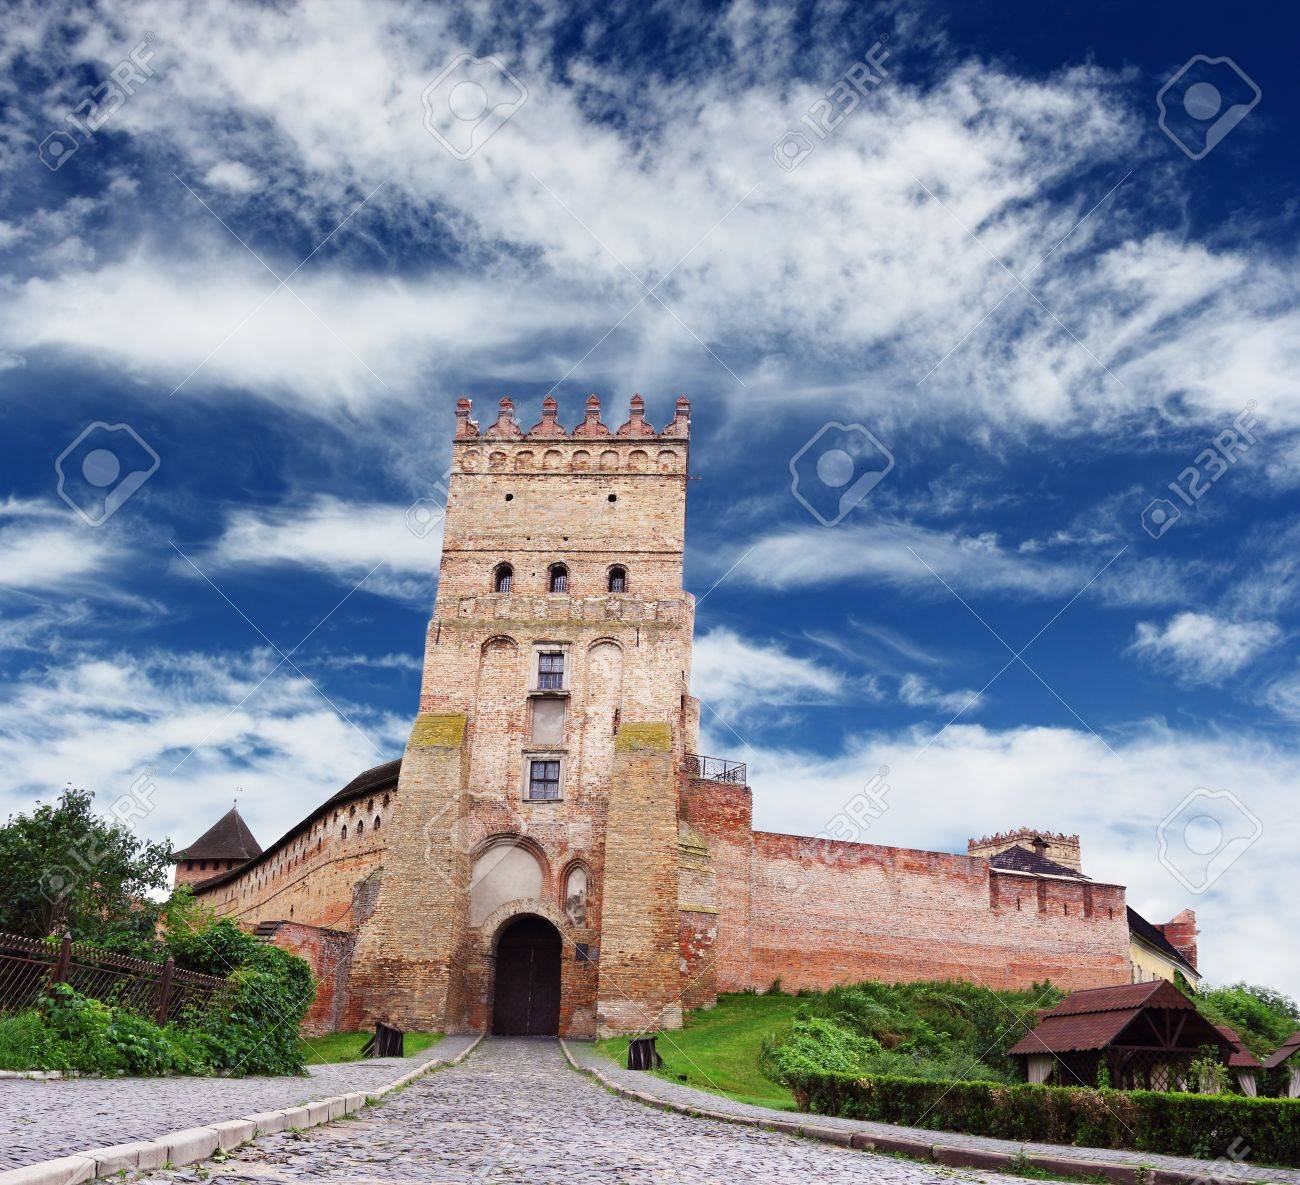 Famous castle in Lutsk over beautiful blue cloudy sky, Ukraine Stock Photo - 14565196